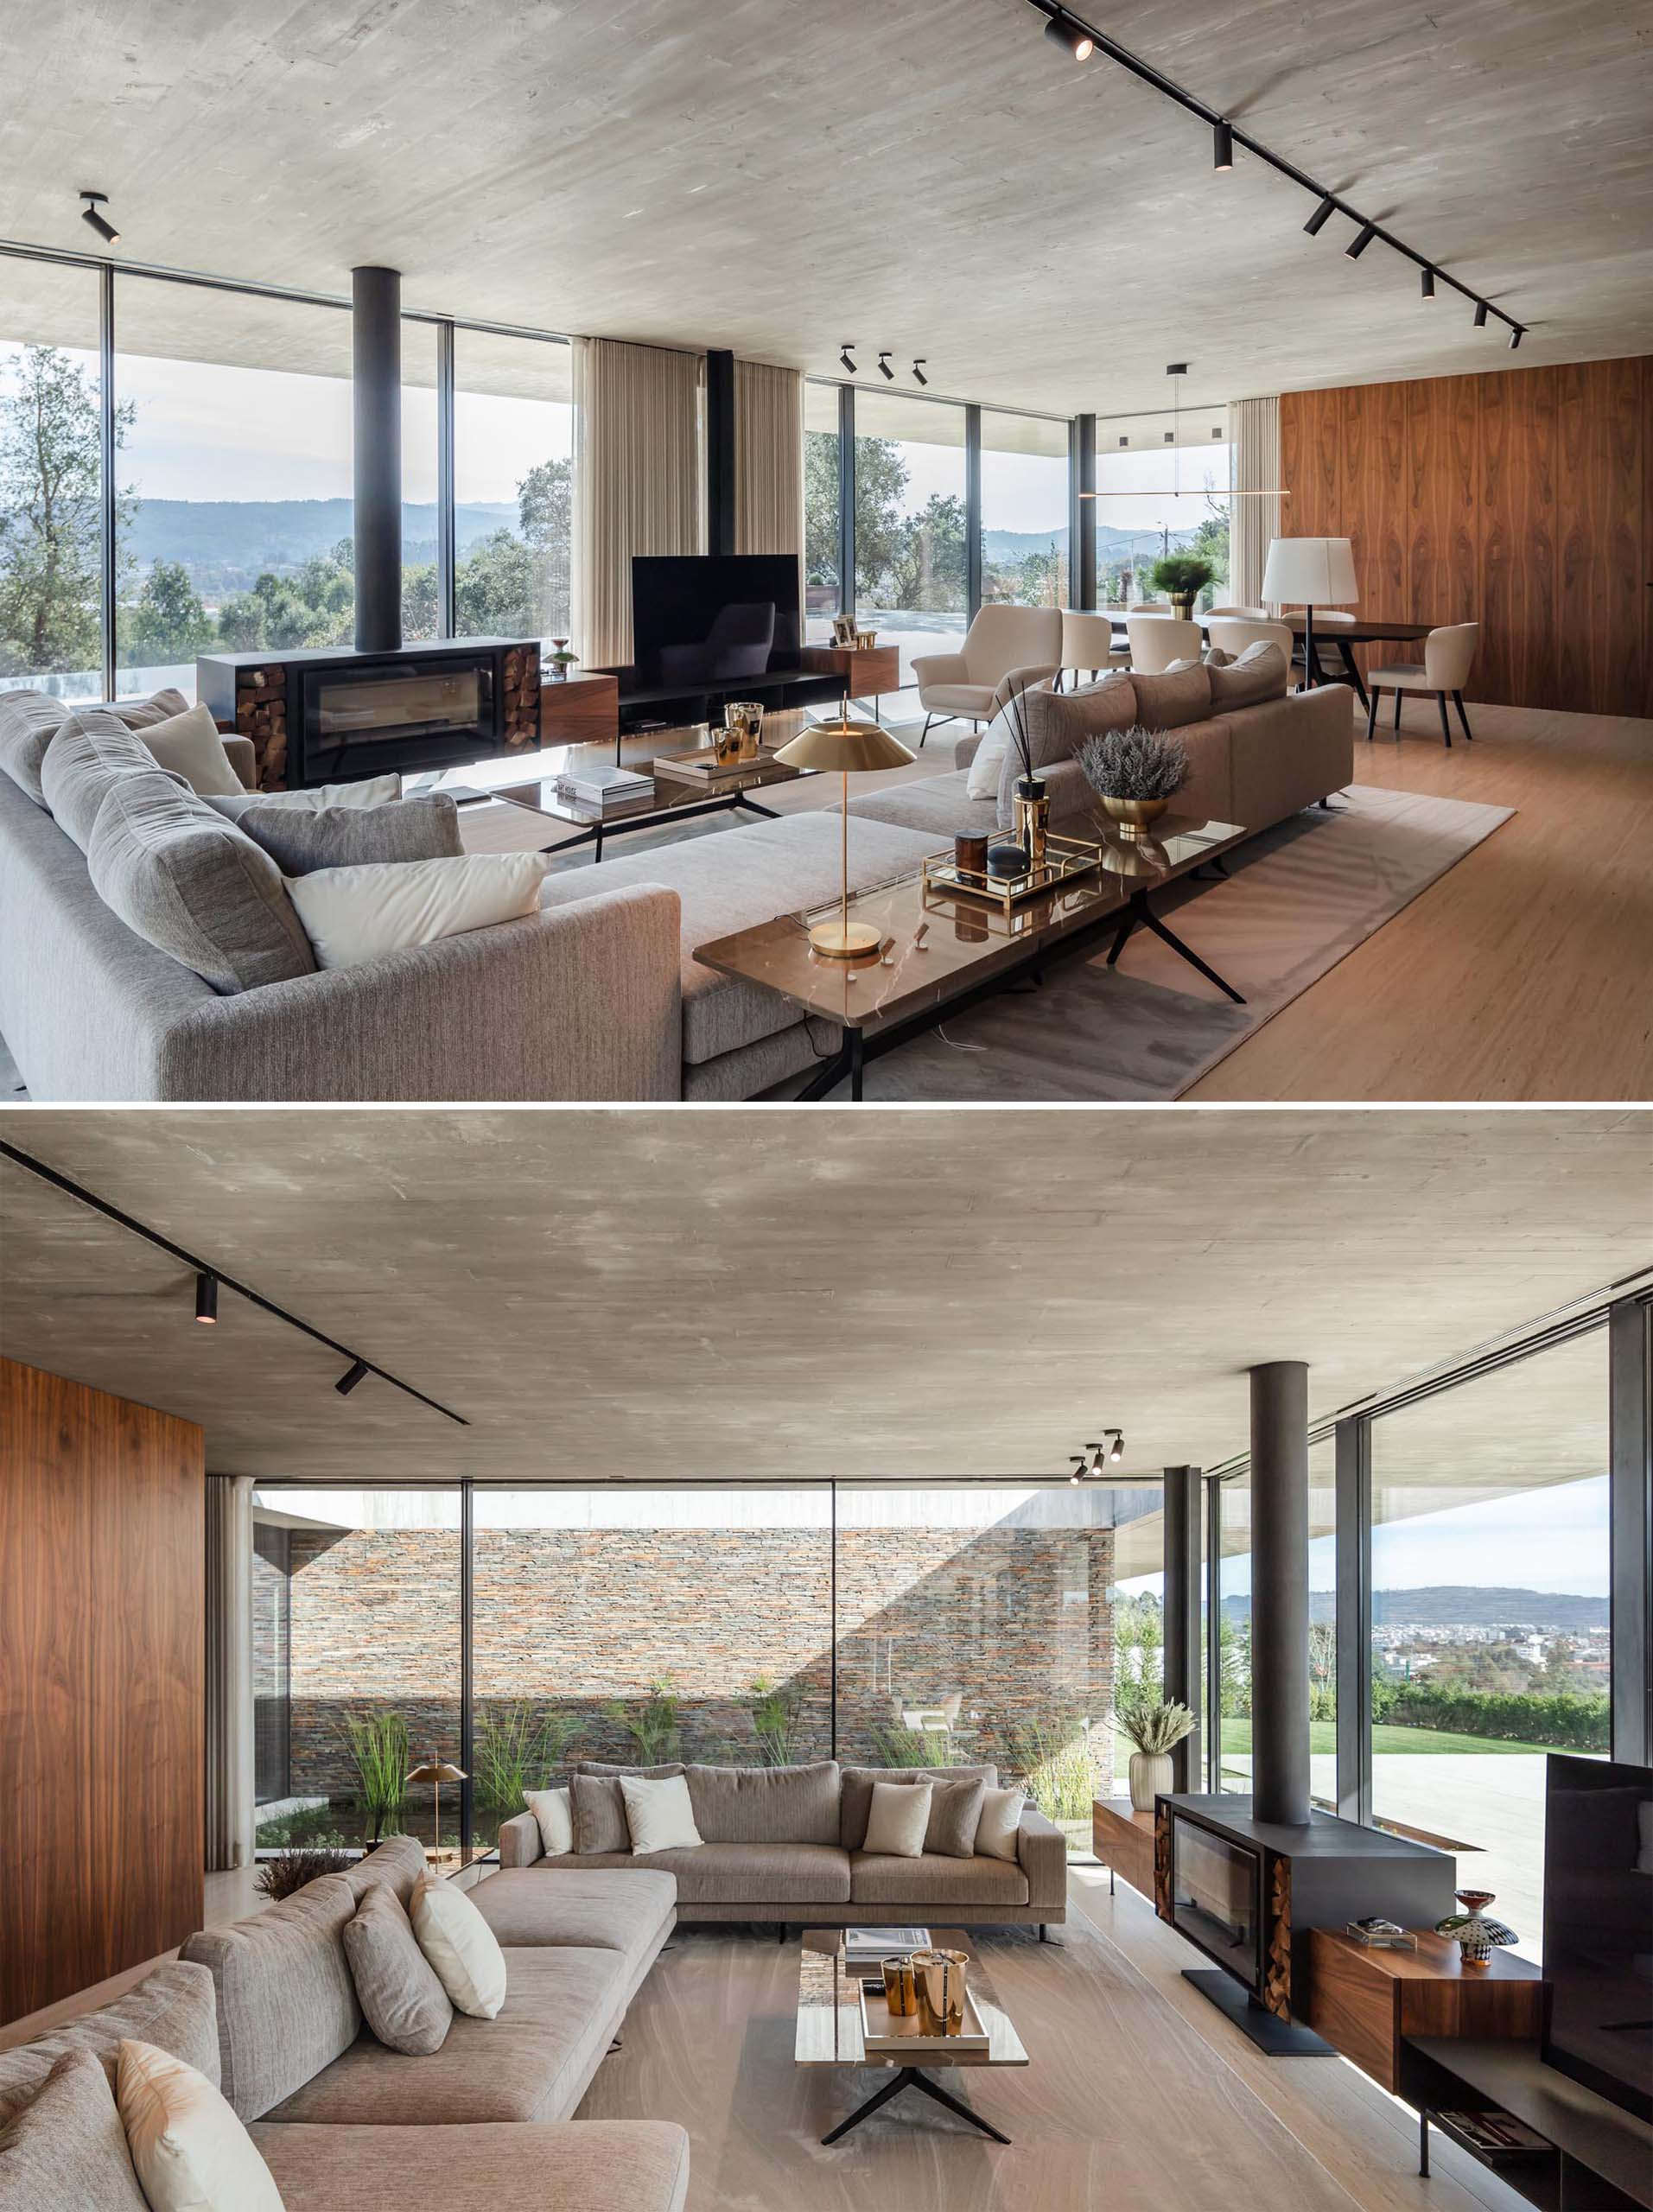 In this modern living room, there's a custom designed fireplace and television stand, that includes firewood storage and shelving underneath the TV.